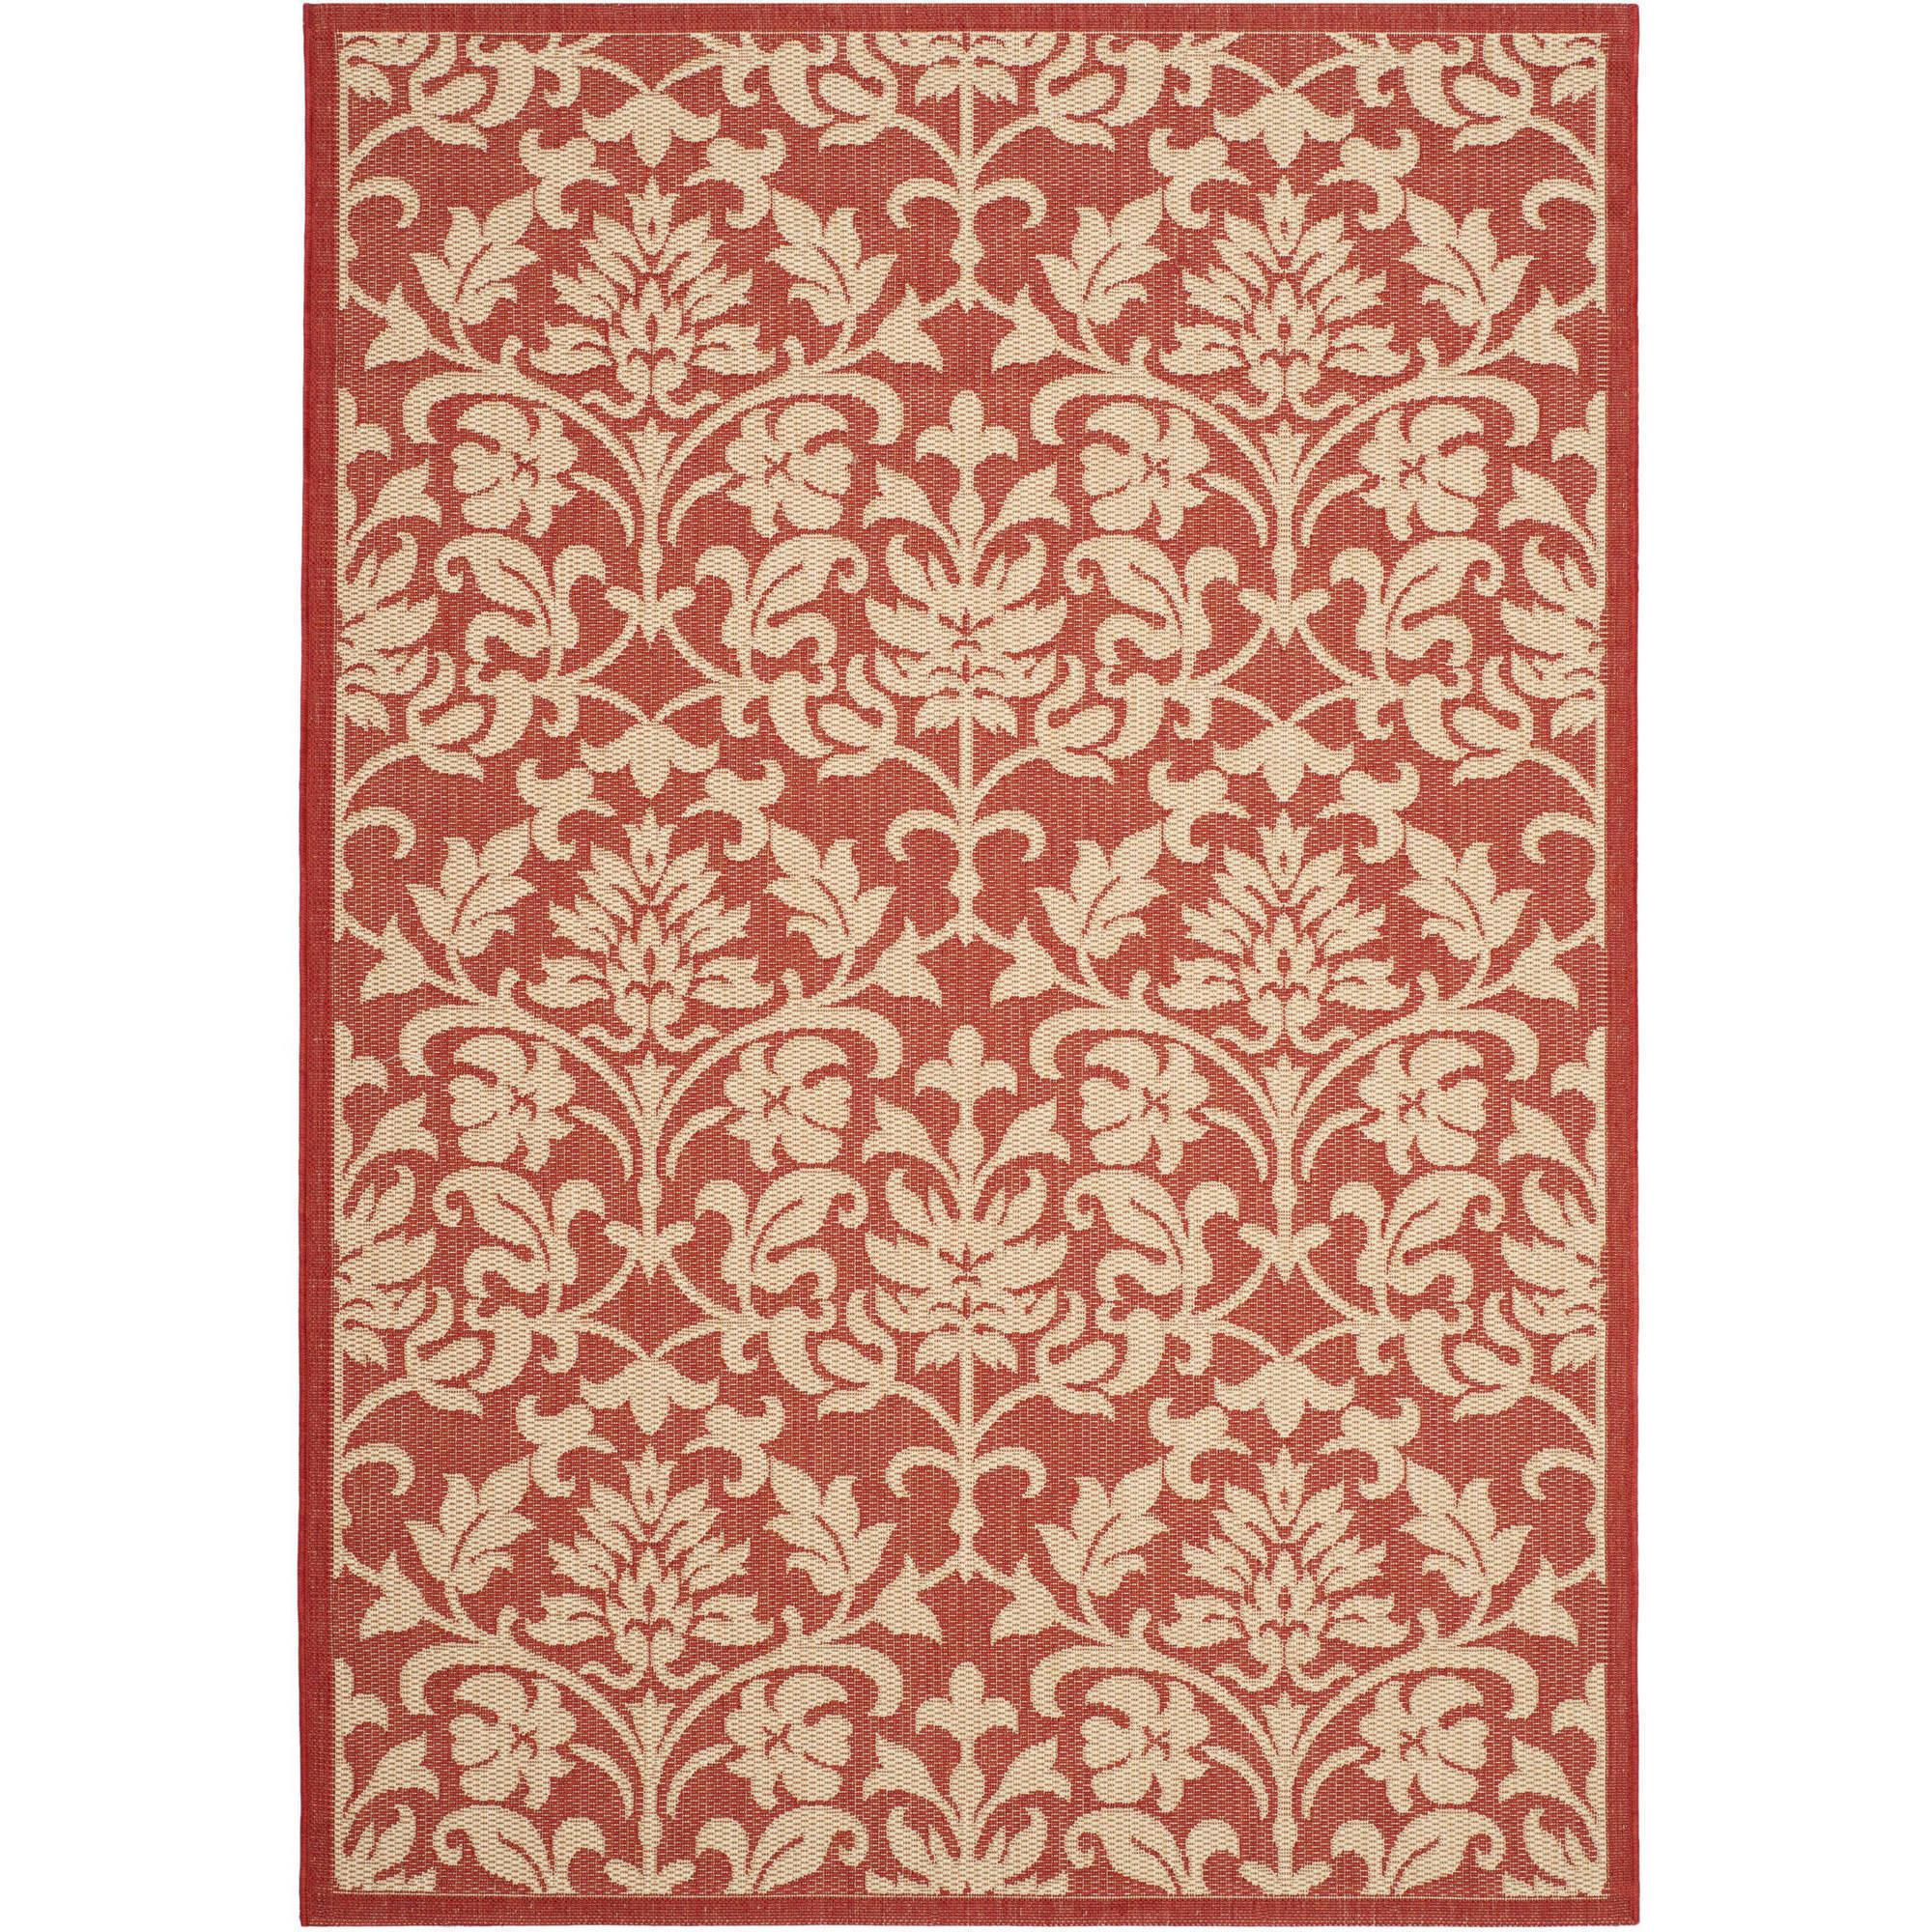 Safavieh Courtyard Yvette Power-Loomed Indoor/Outdoor Area Rug or Runner